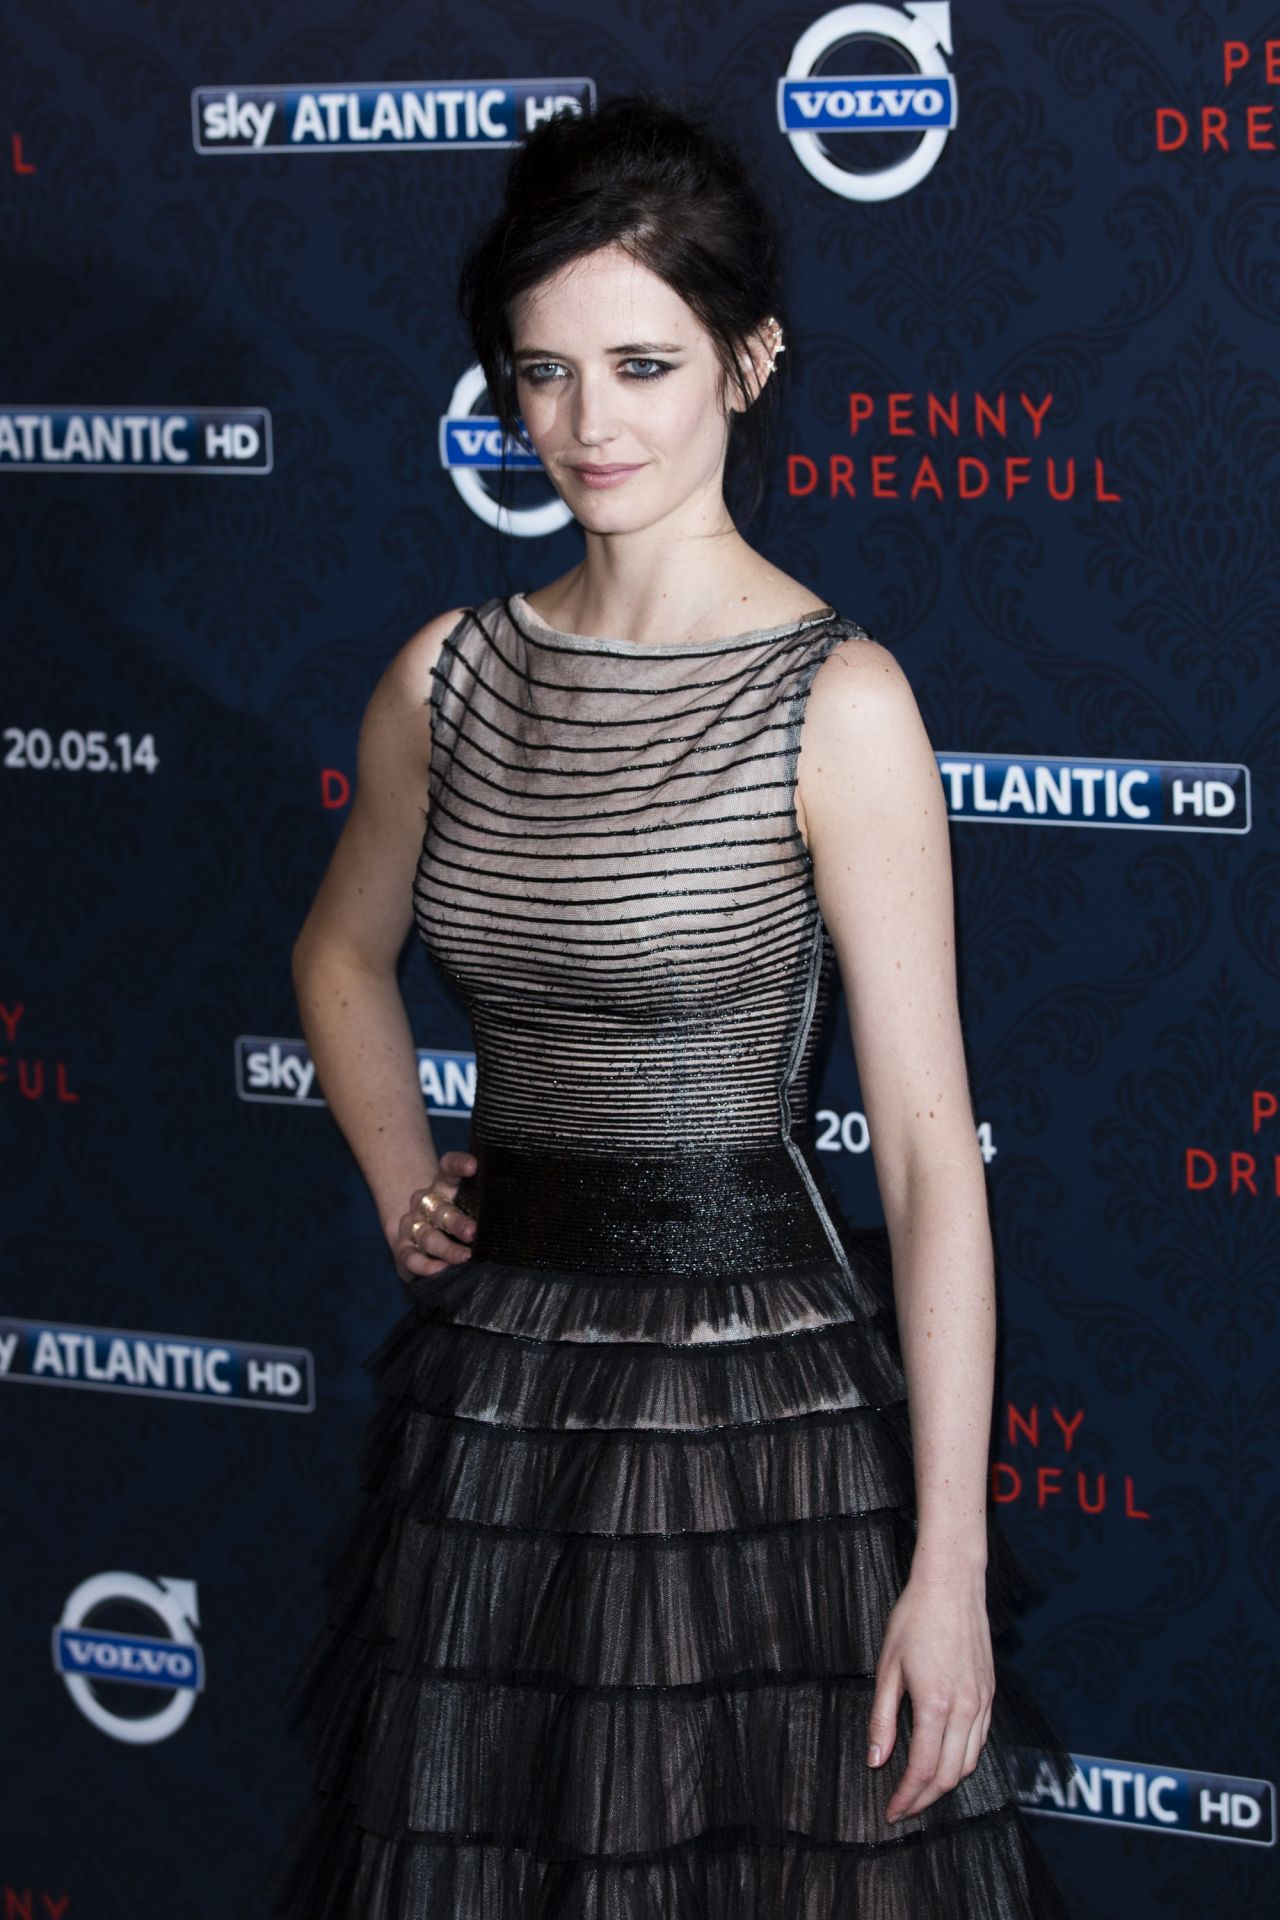 Eva Green - Penny Dreadful Photocall In London-4930